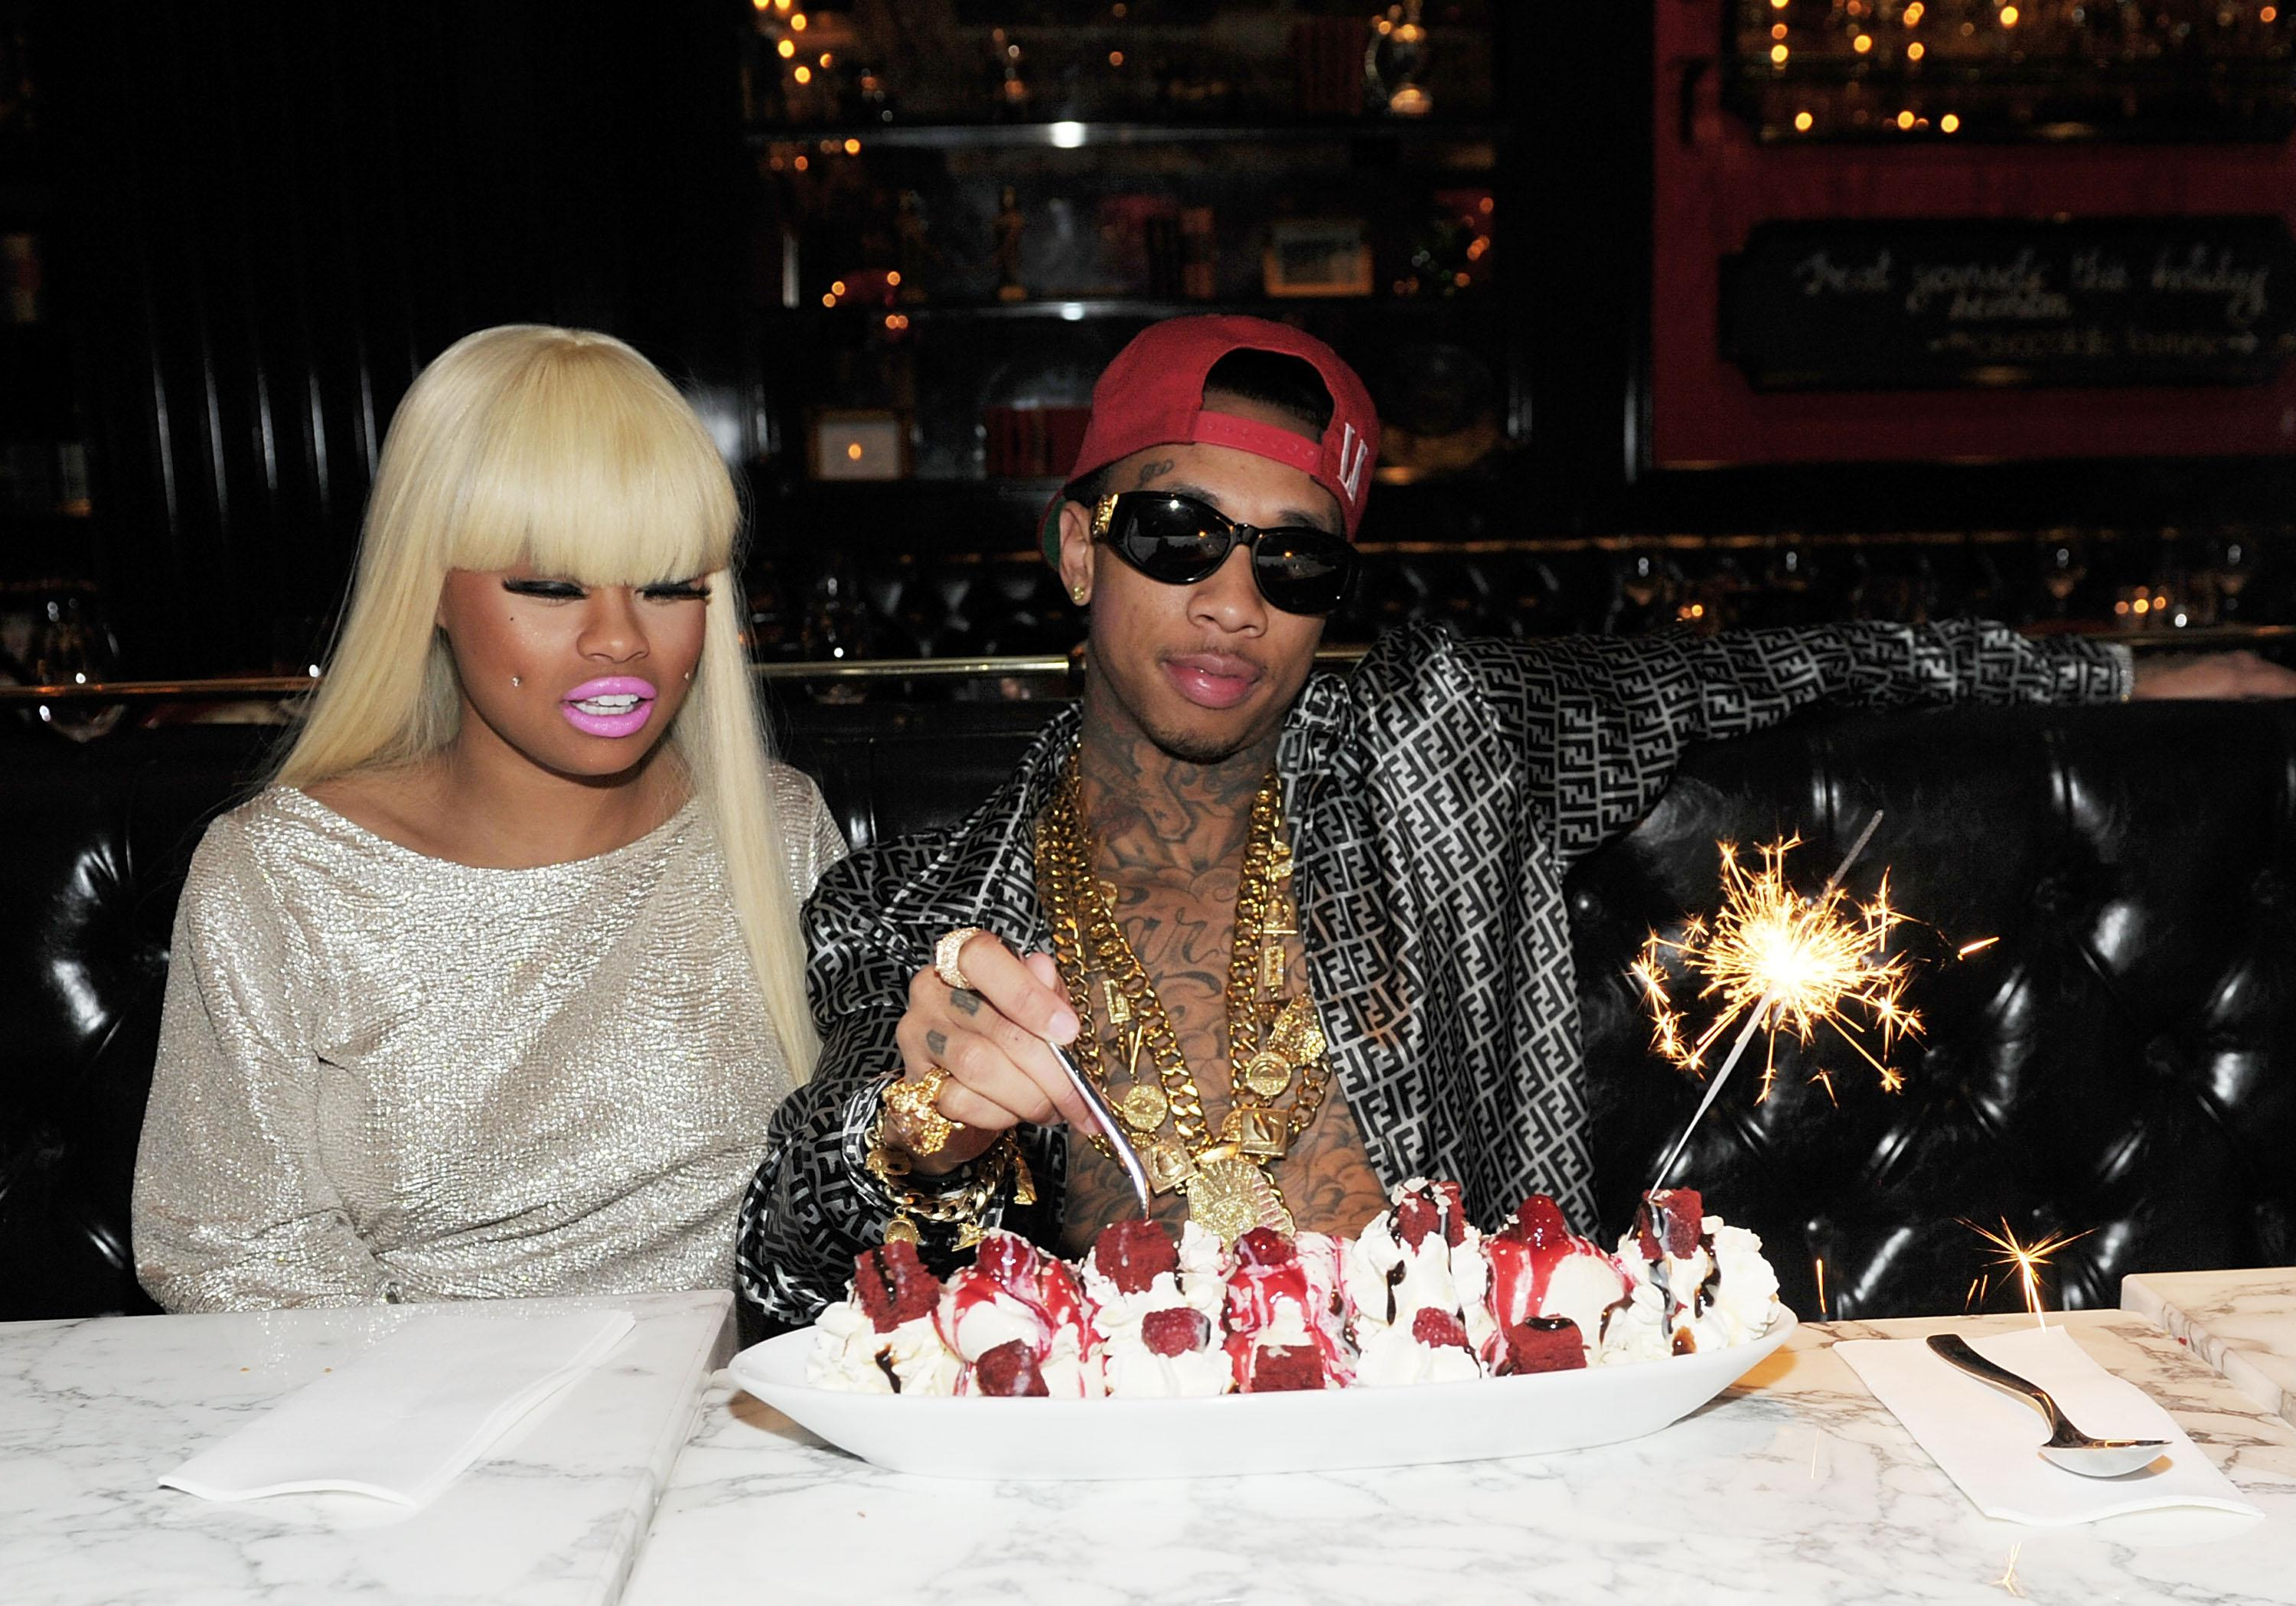 Tyga Celebrates A Sweet Birthday At Sugar Factory In Las Vegas